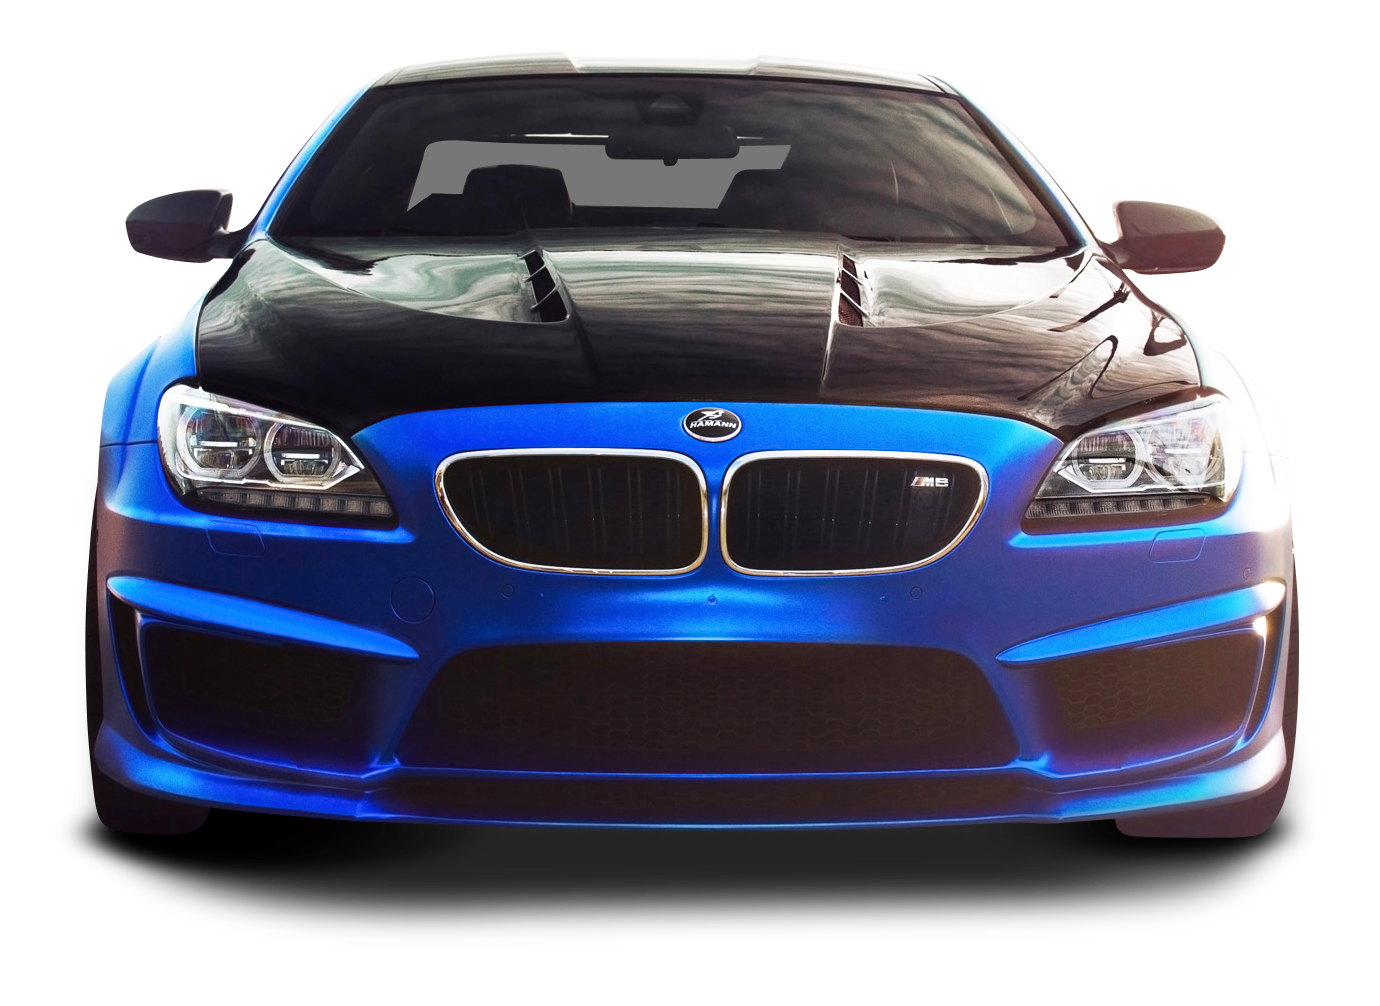 BMW M6 Blue Car PNG Image.